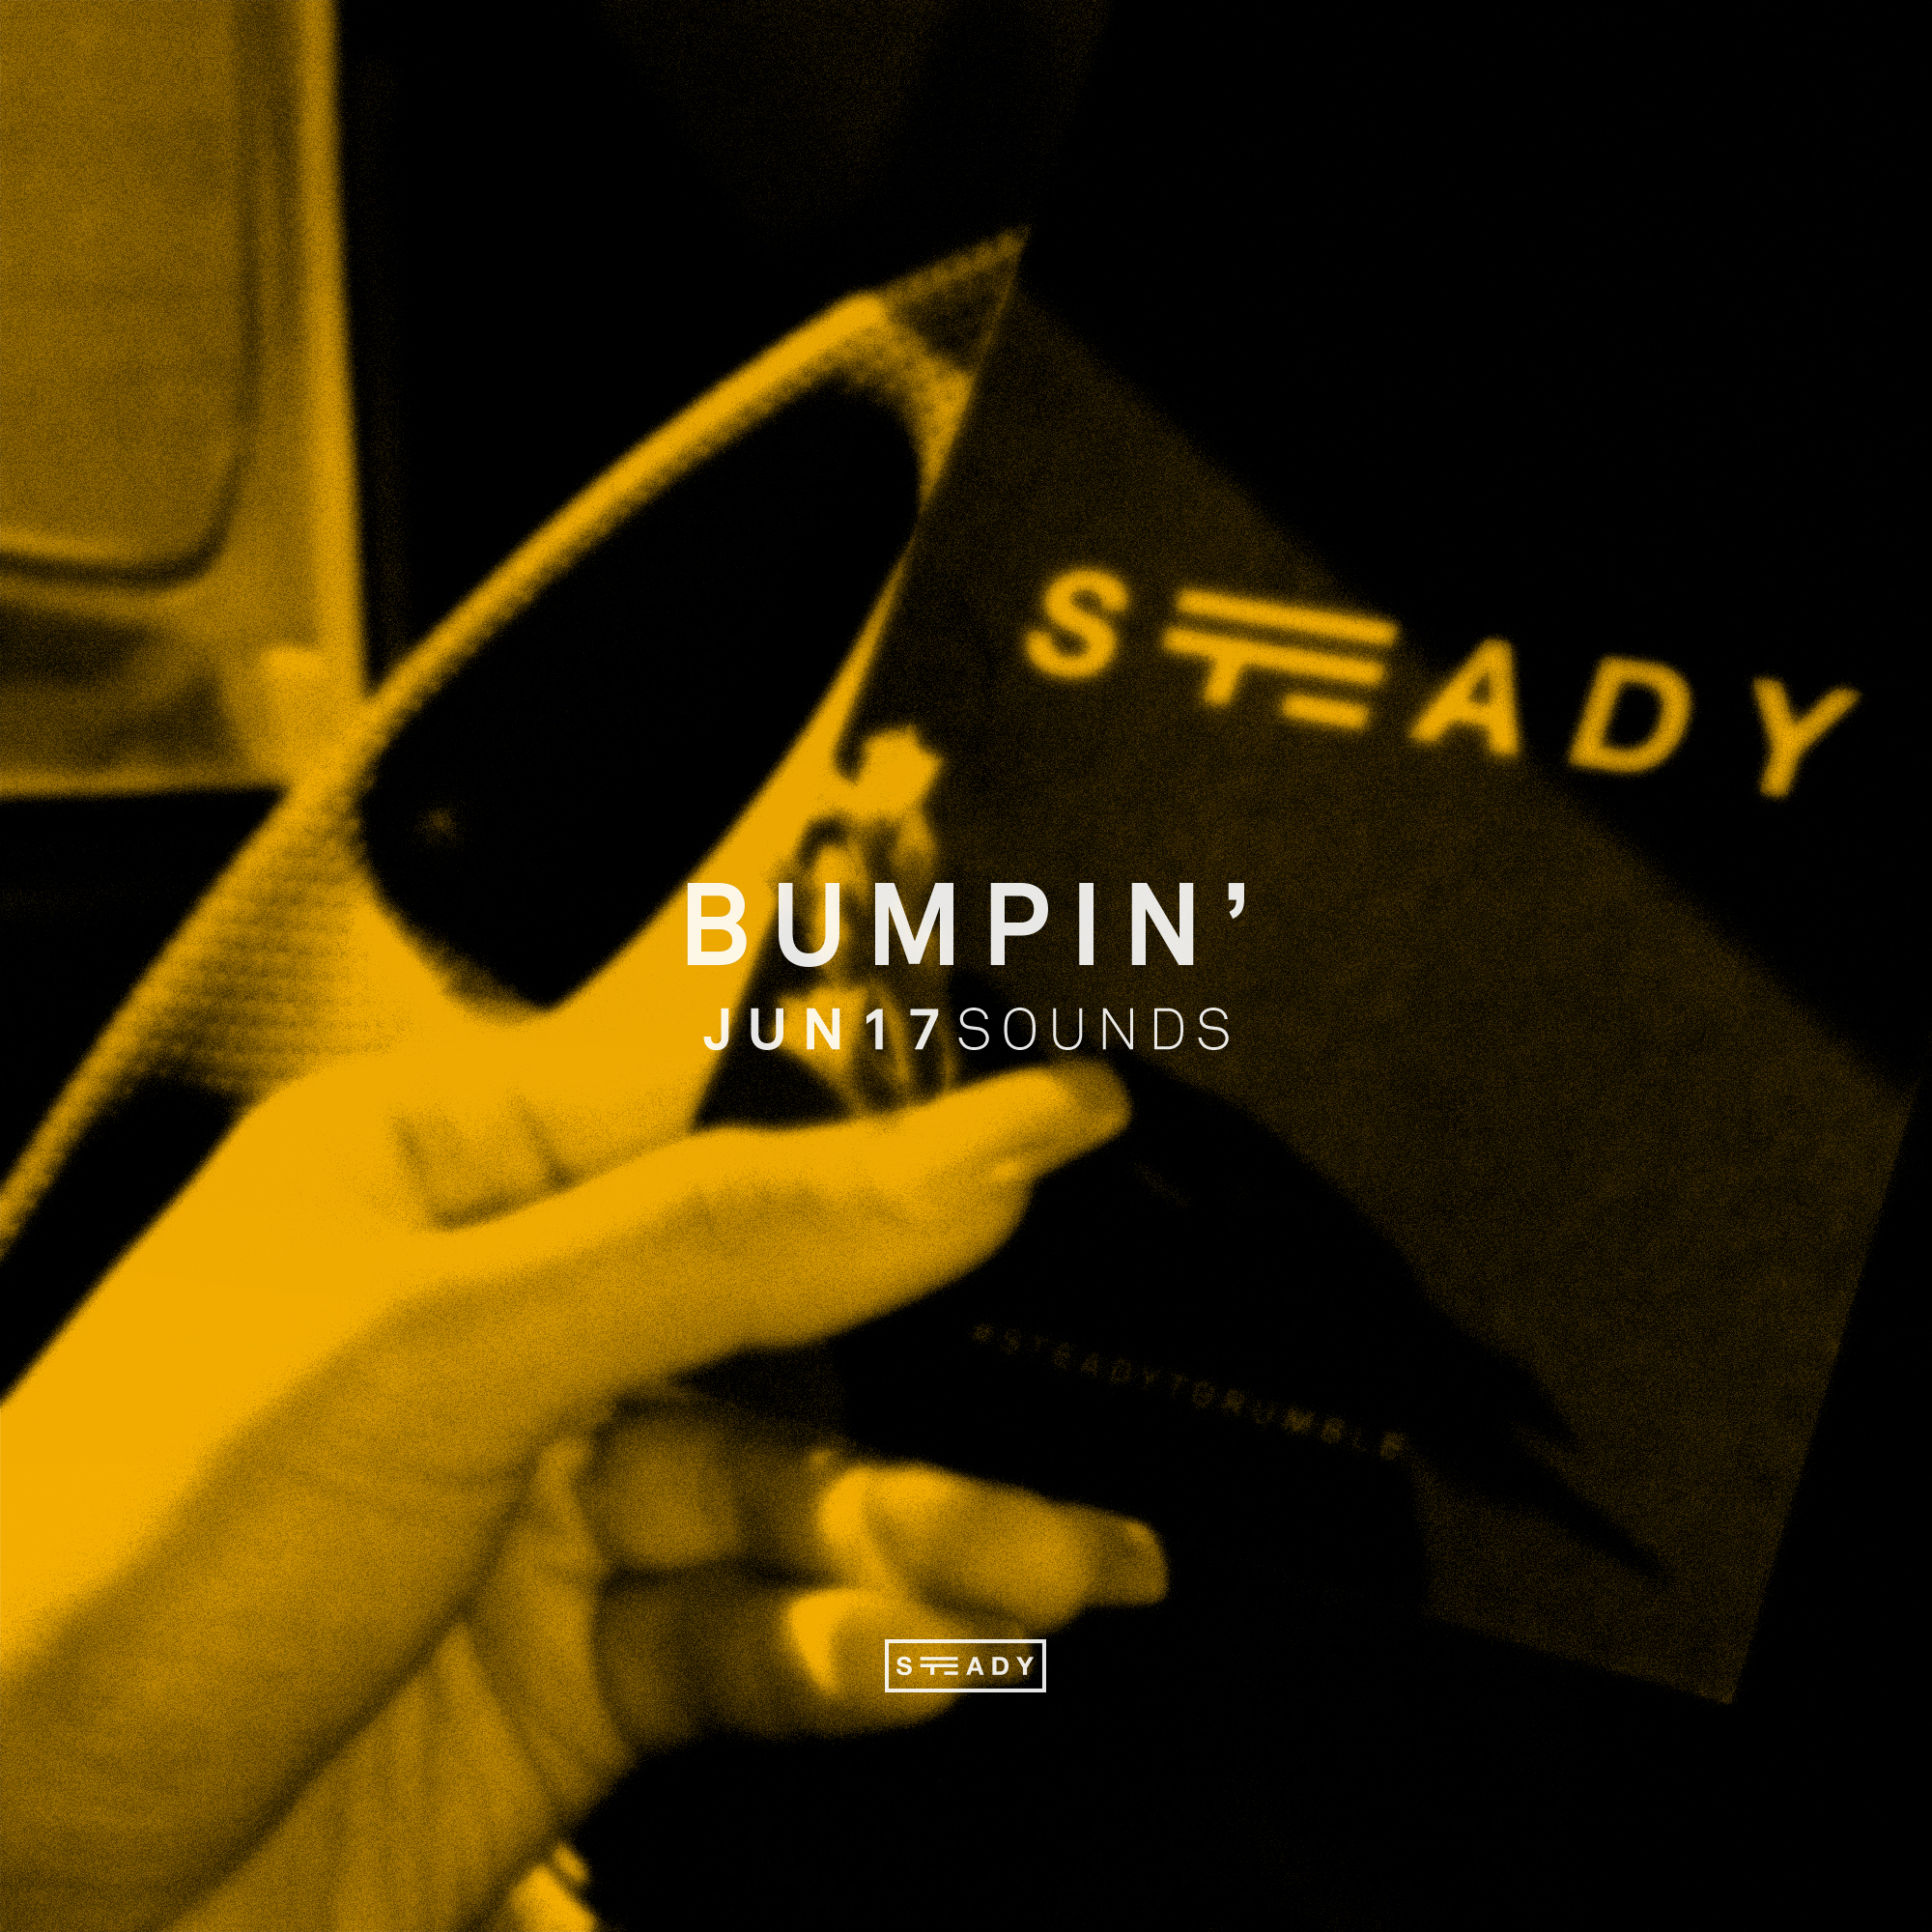 STEADY BUMPIN': JUN17 SOUNDS